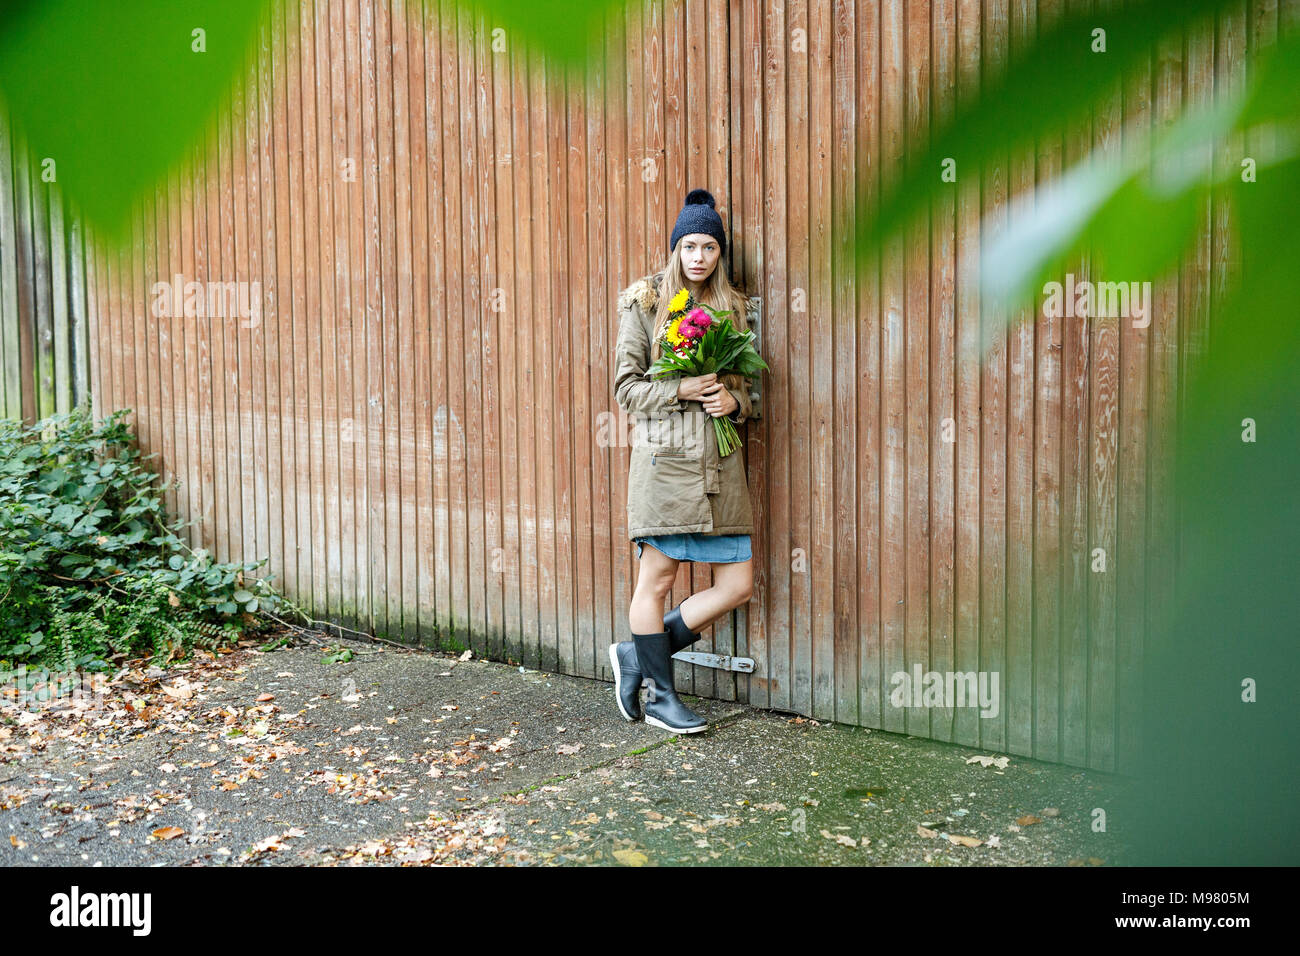 Portrait of young woman standing at wooden wall holding bunch of flowers - Stock Image